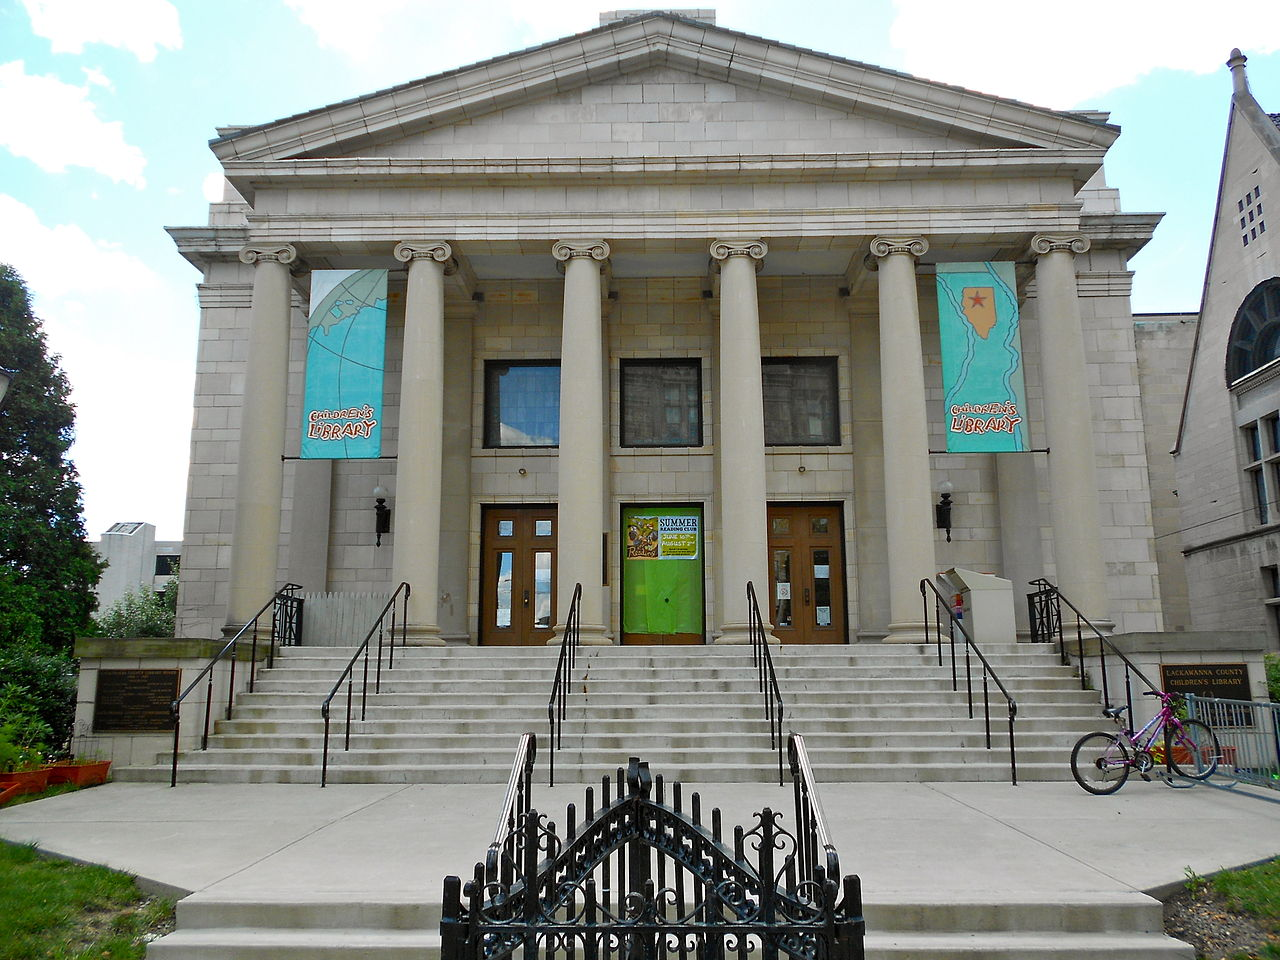 The First Church of Christ, Scientist, now the Lackawanna County Children's Library, was built in 1915 and is a fine example of Classical Revival architecture.